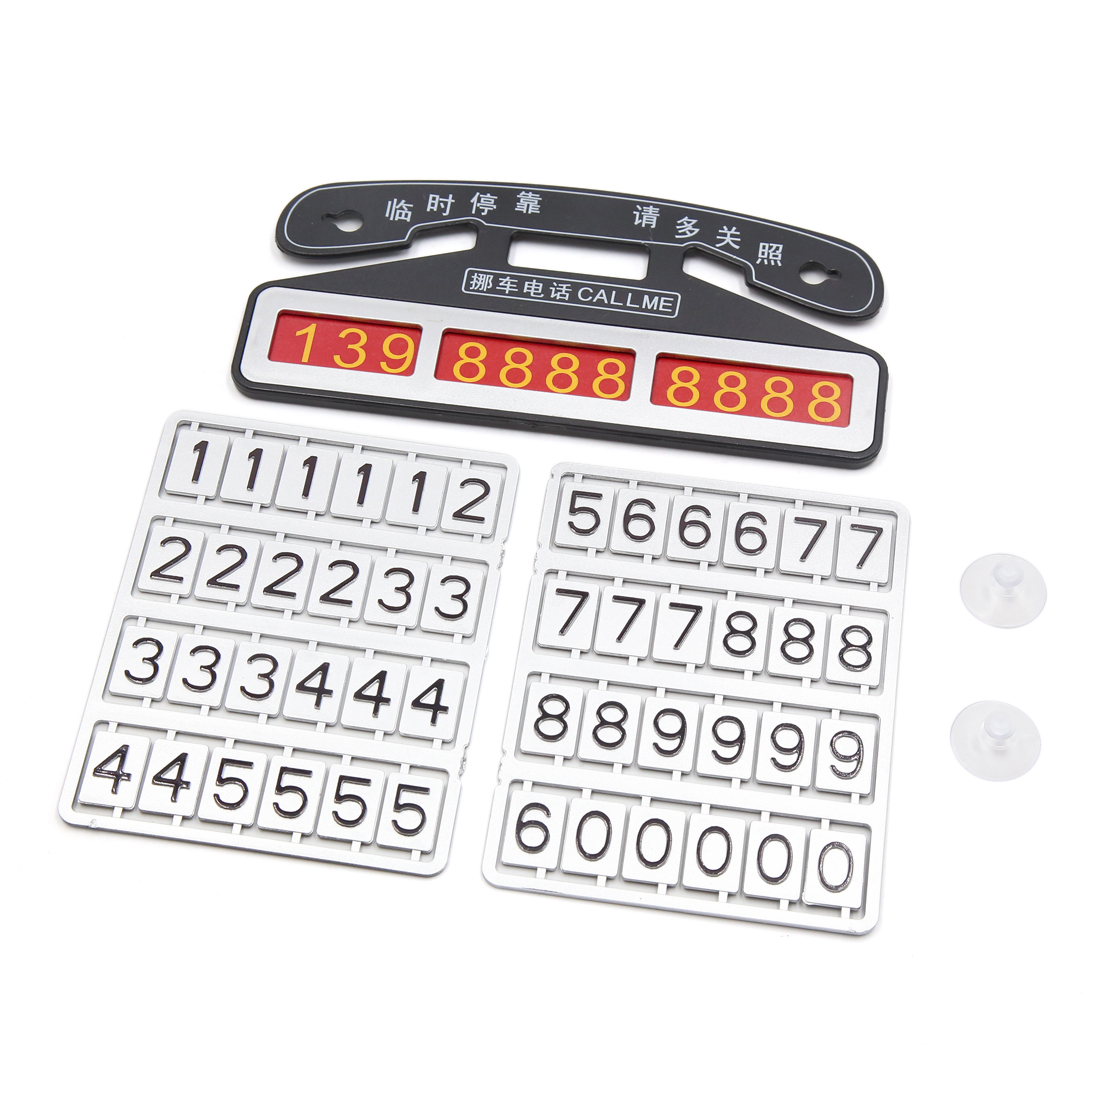 Silver Tone Temporary Parking Notification Phone Number Card Plate for Car Auto